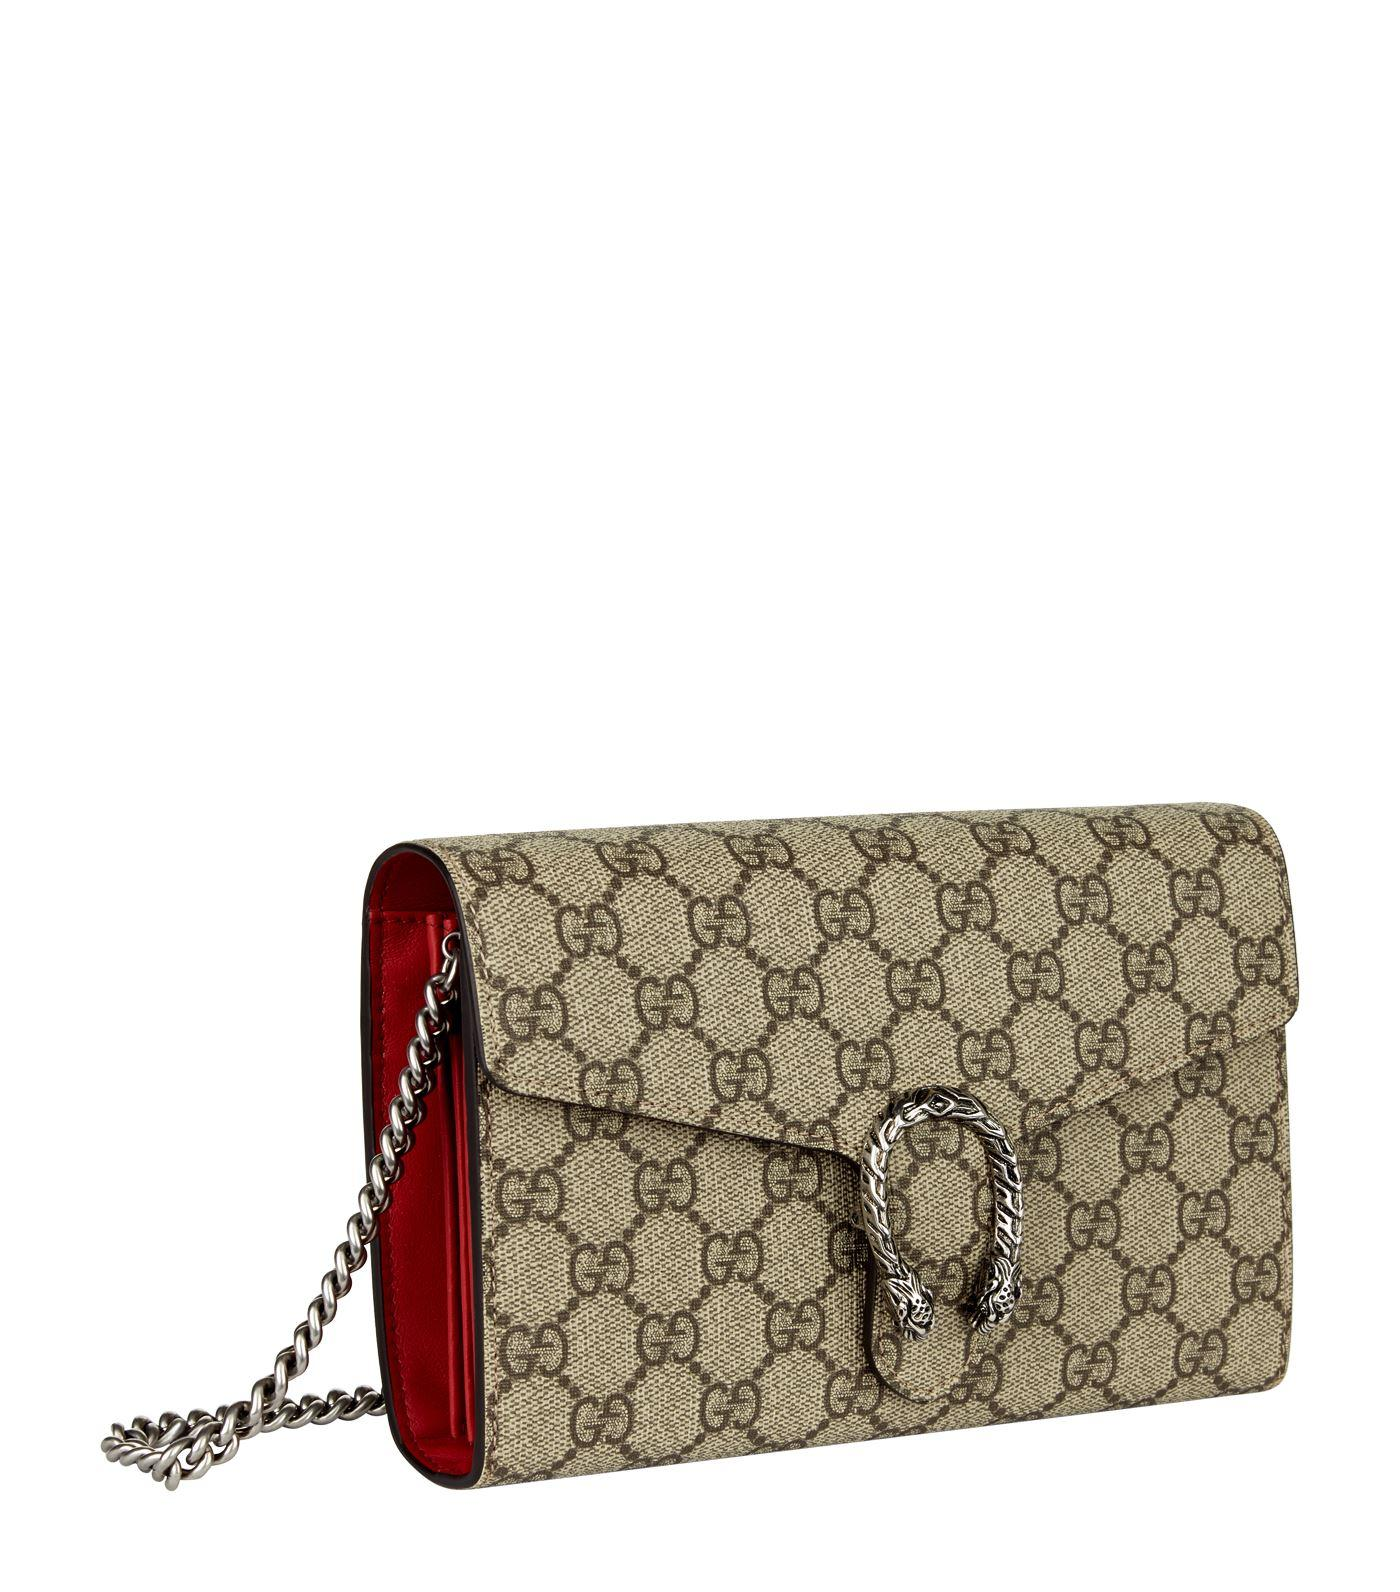 d7b93e61255792 Gucci Wallet On Chain Uk | Stanford Center for Opportunity Policy in ...